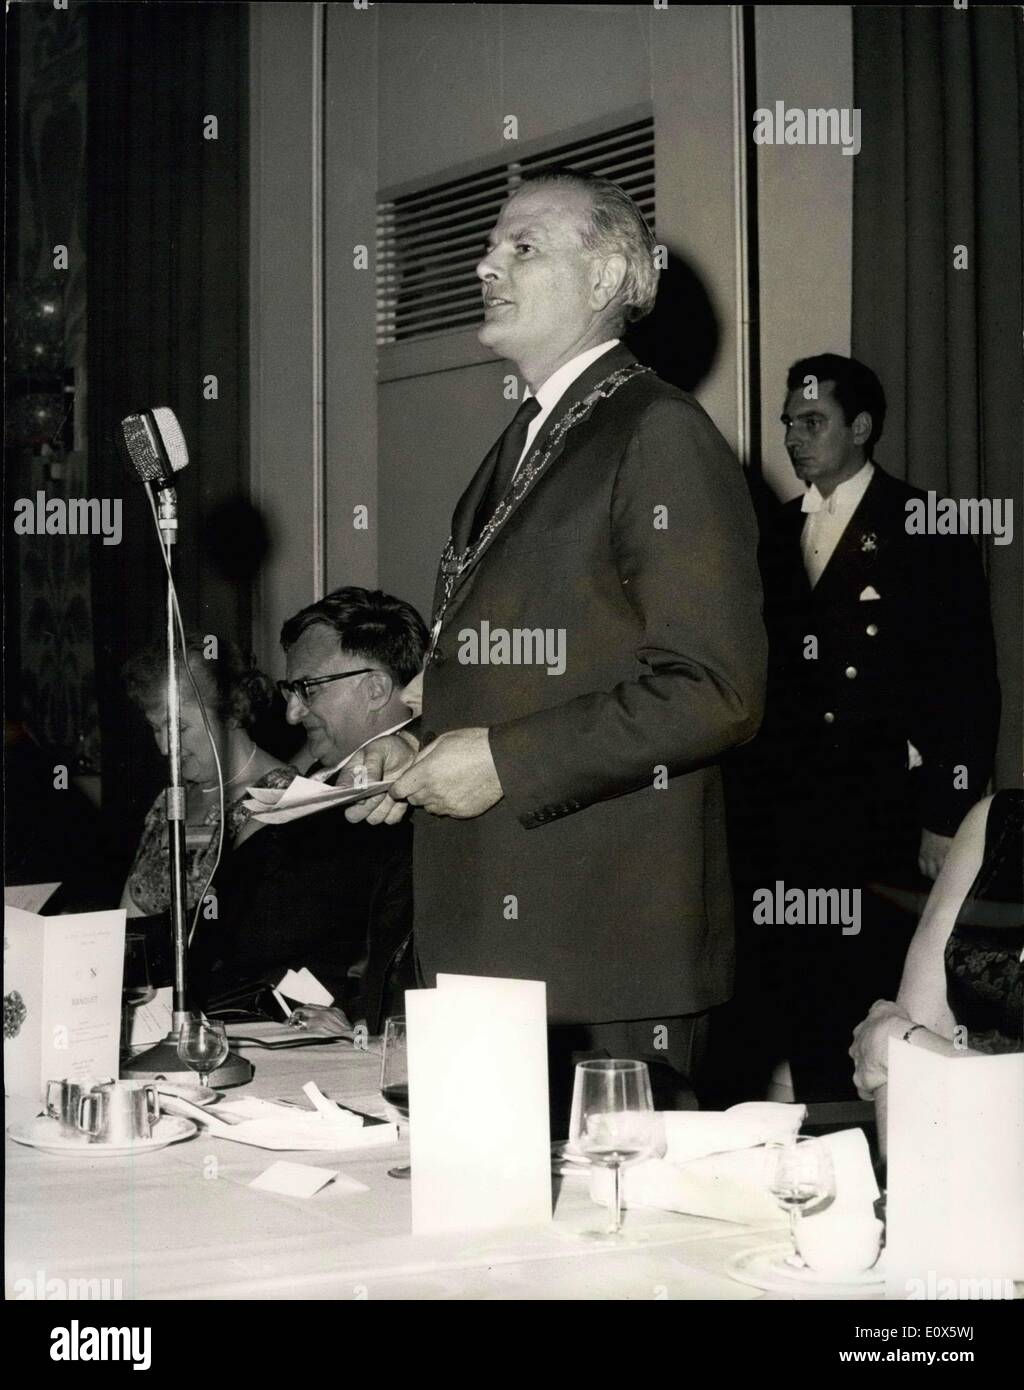 Jun. 15, 1965 - Institution of Chemical Engineers Banquet at the London Hilton. Many well known personalities attended the Institution of Chemical Engineers Banquet at the London Hilton Hotel - Park Lane - last evening. The toast was proposed by Lord Bowden, Minister of State - Dept. of Education and Science. Other speakers included Professor Stuart W. Churchill, Vice President American Institute of Chemical Engineers - and Professor P.V. Danckwerts, G.C., M.B.E., M.A., S.M., M.I. Chem. E - Stock Image